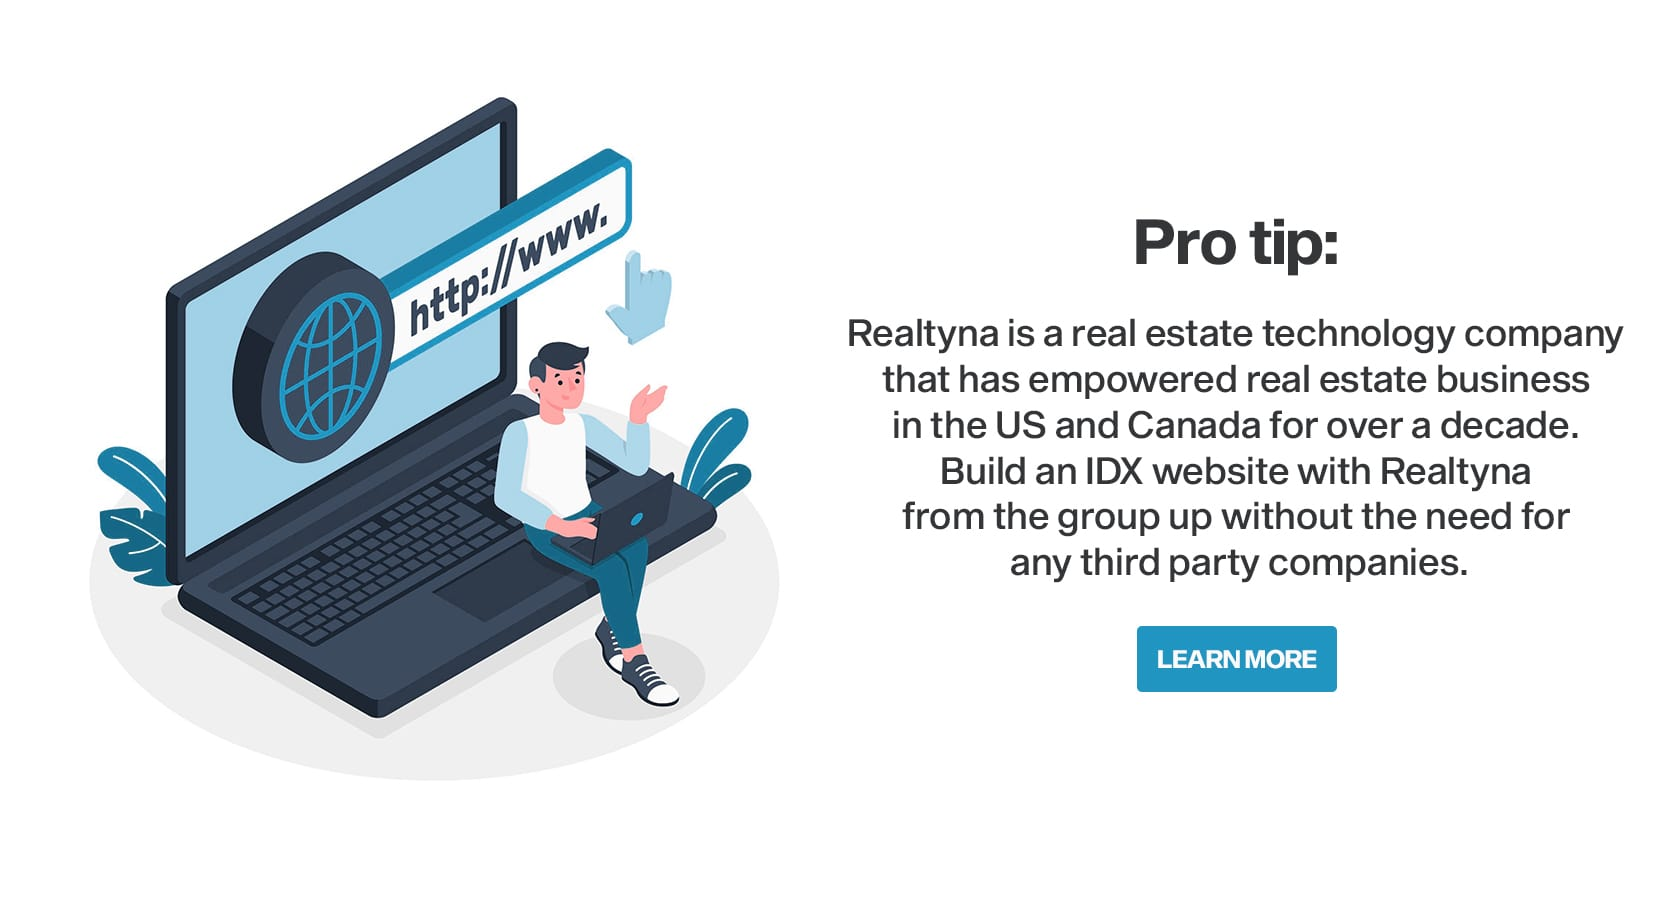 Realtyna-The Real Estate Technology Company